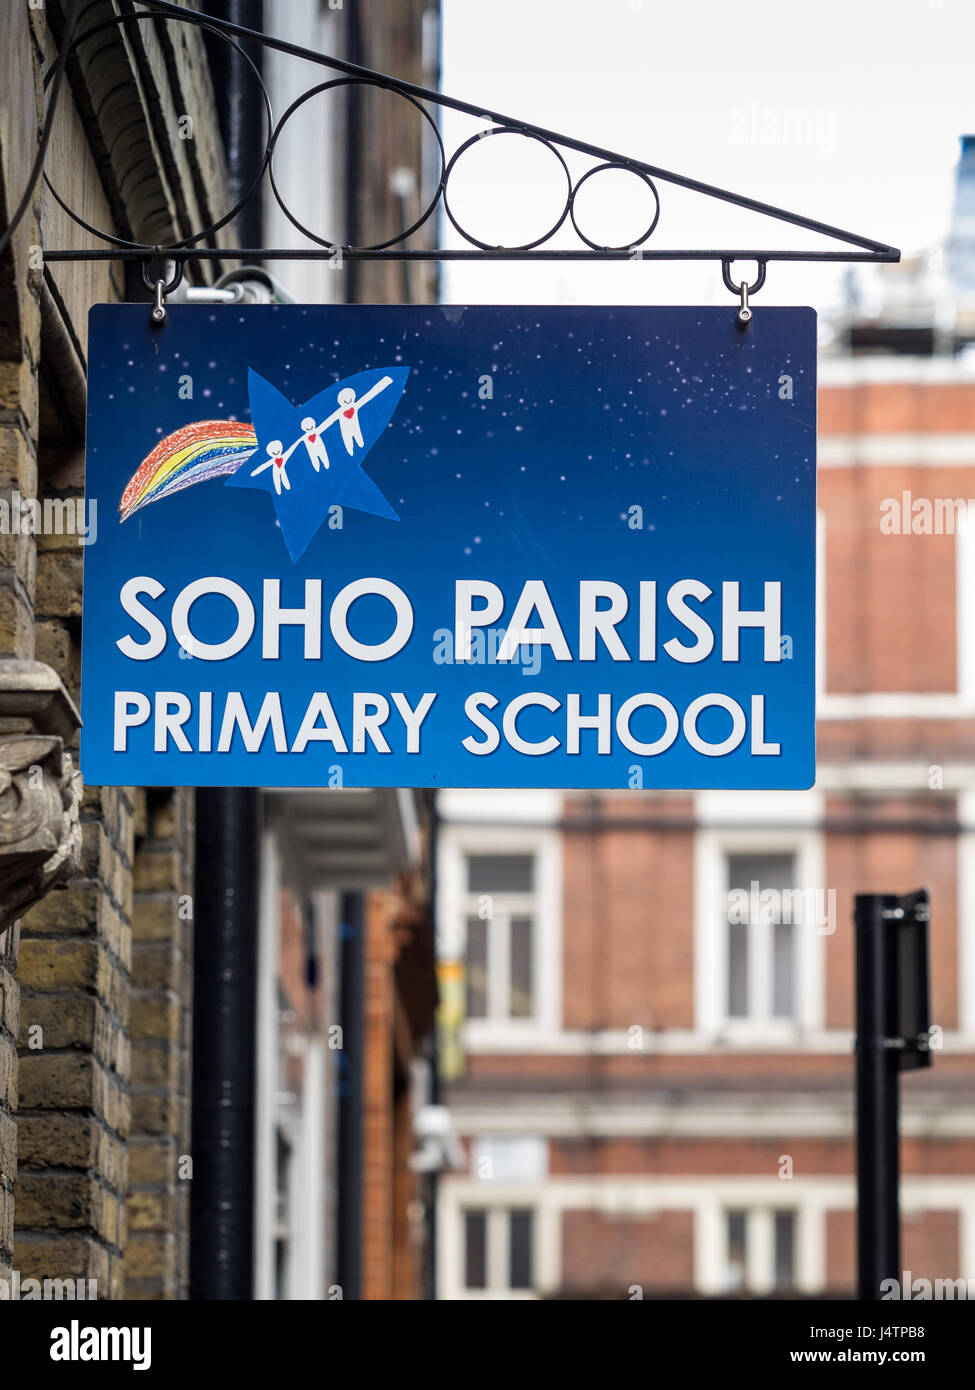 Sign outside the Soho Parish Primary School in London's central Soho district. The school is run by the Church - Stock Image